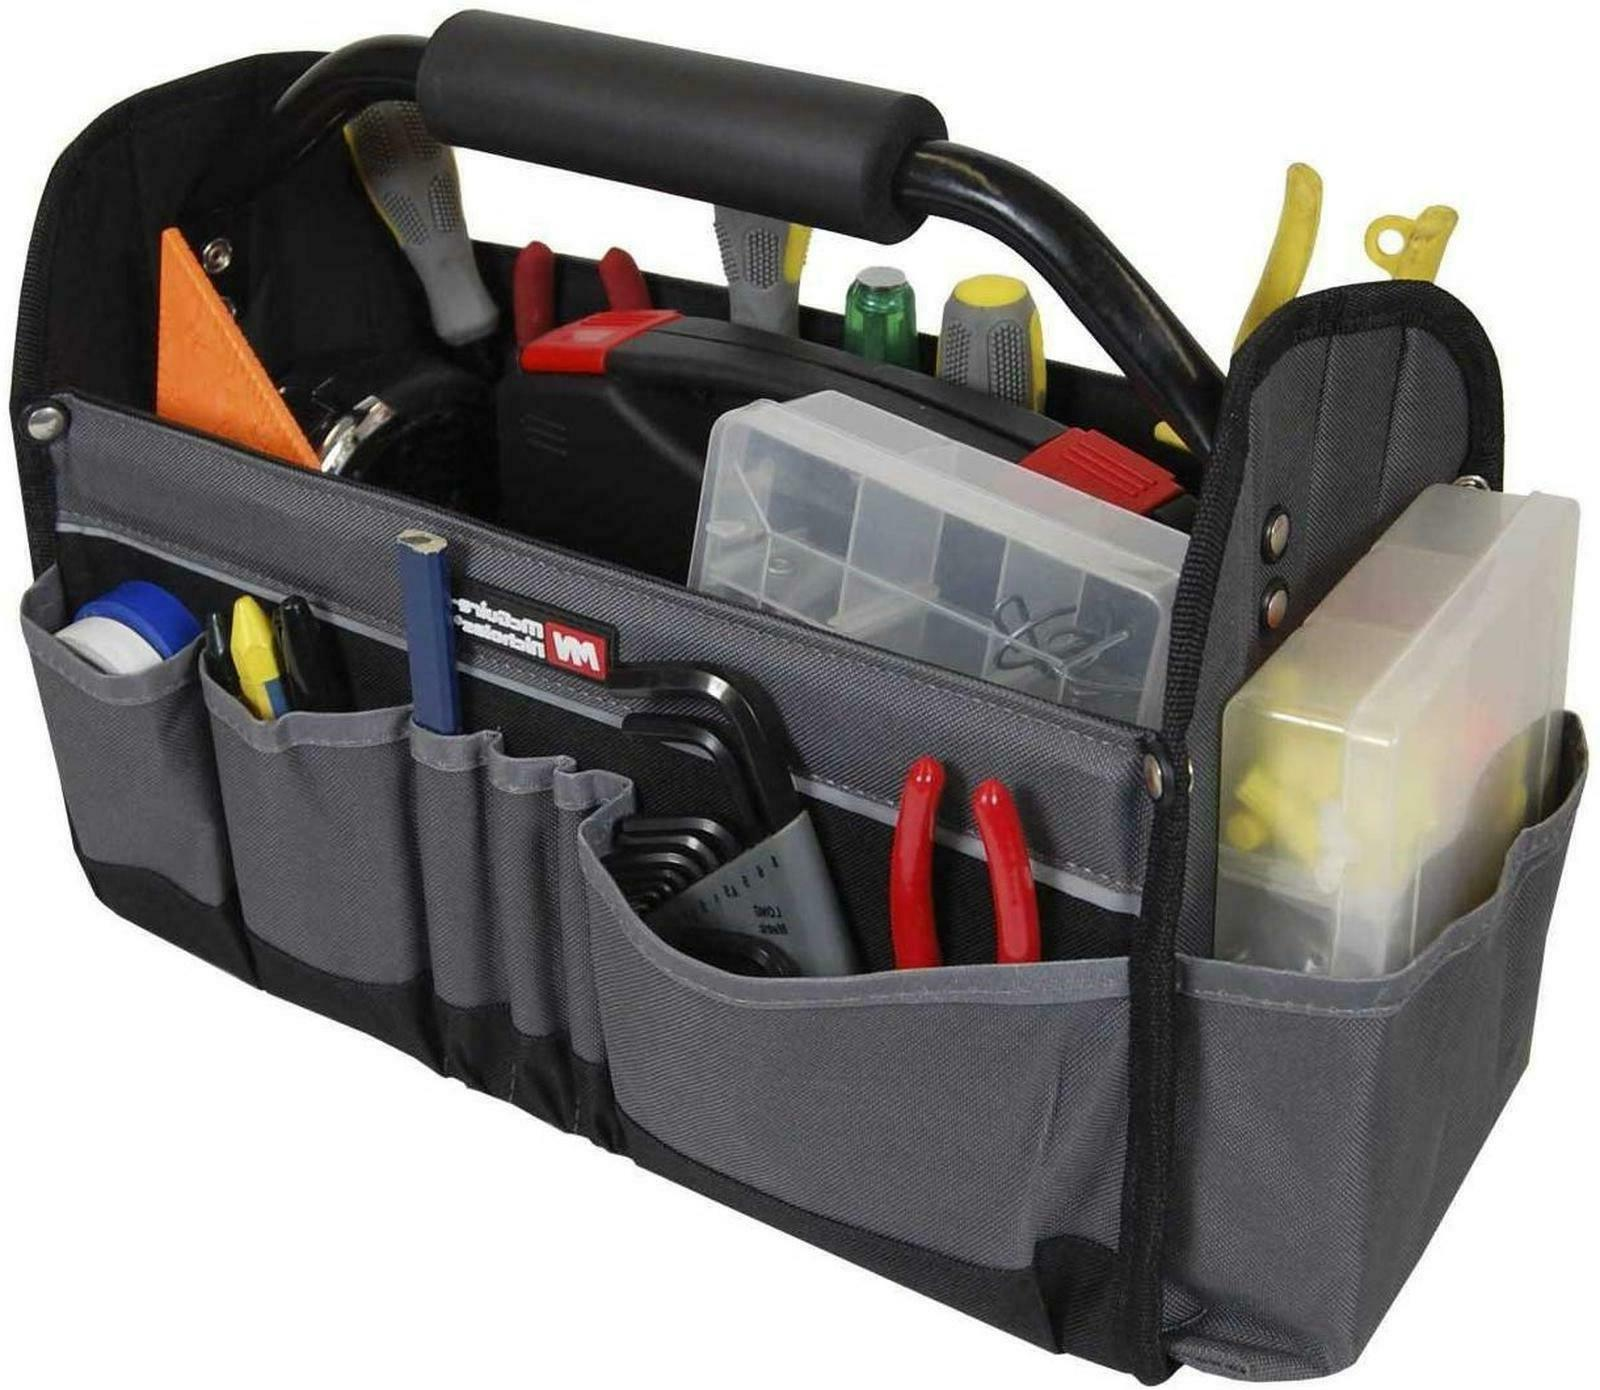 collapsible tool tote 15 inch workshop storage